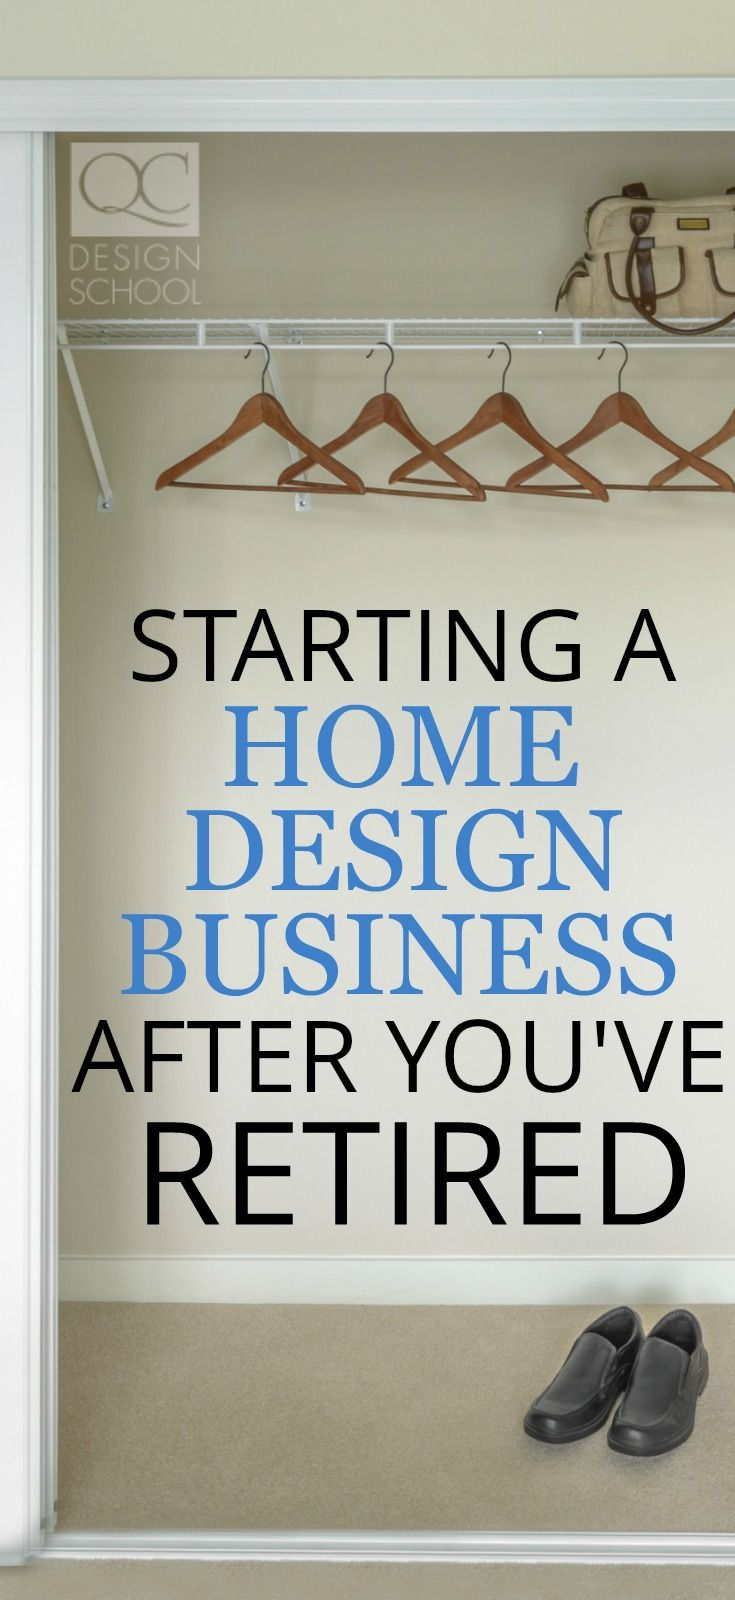 Start a home design business after retirement with our helpful guide, including getting trained, using your network, and of course, enjoying yourself! #QCDesignSchool #designcourses #homedesignbusiness #businessowner #startabusiness #becomeadesigner #becomeaninteriordecorator #onlinedesignschool #careertraining